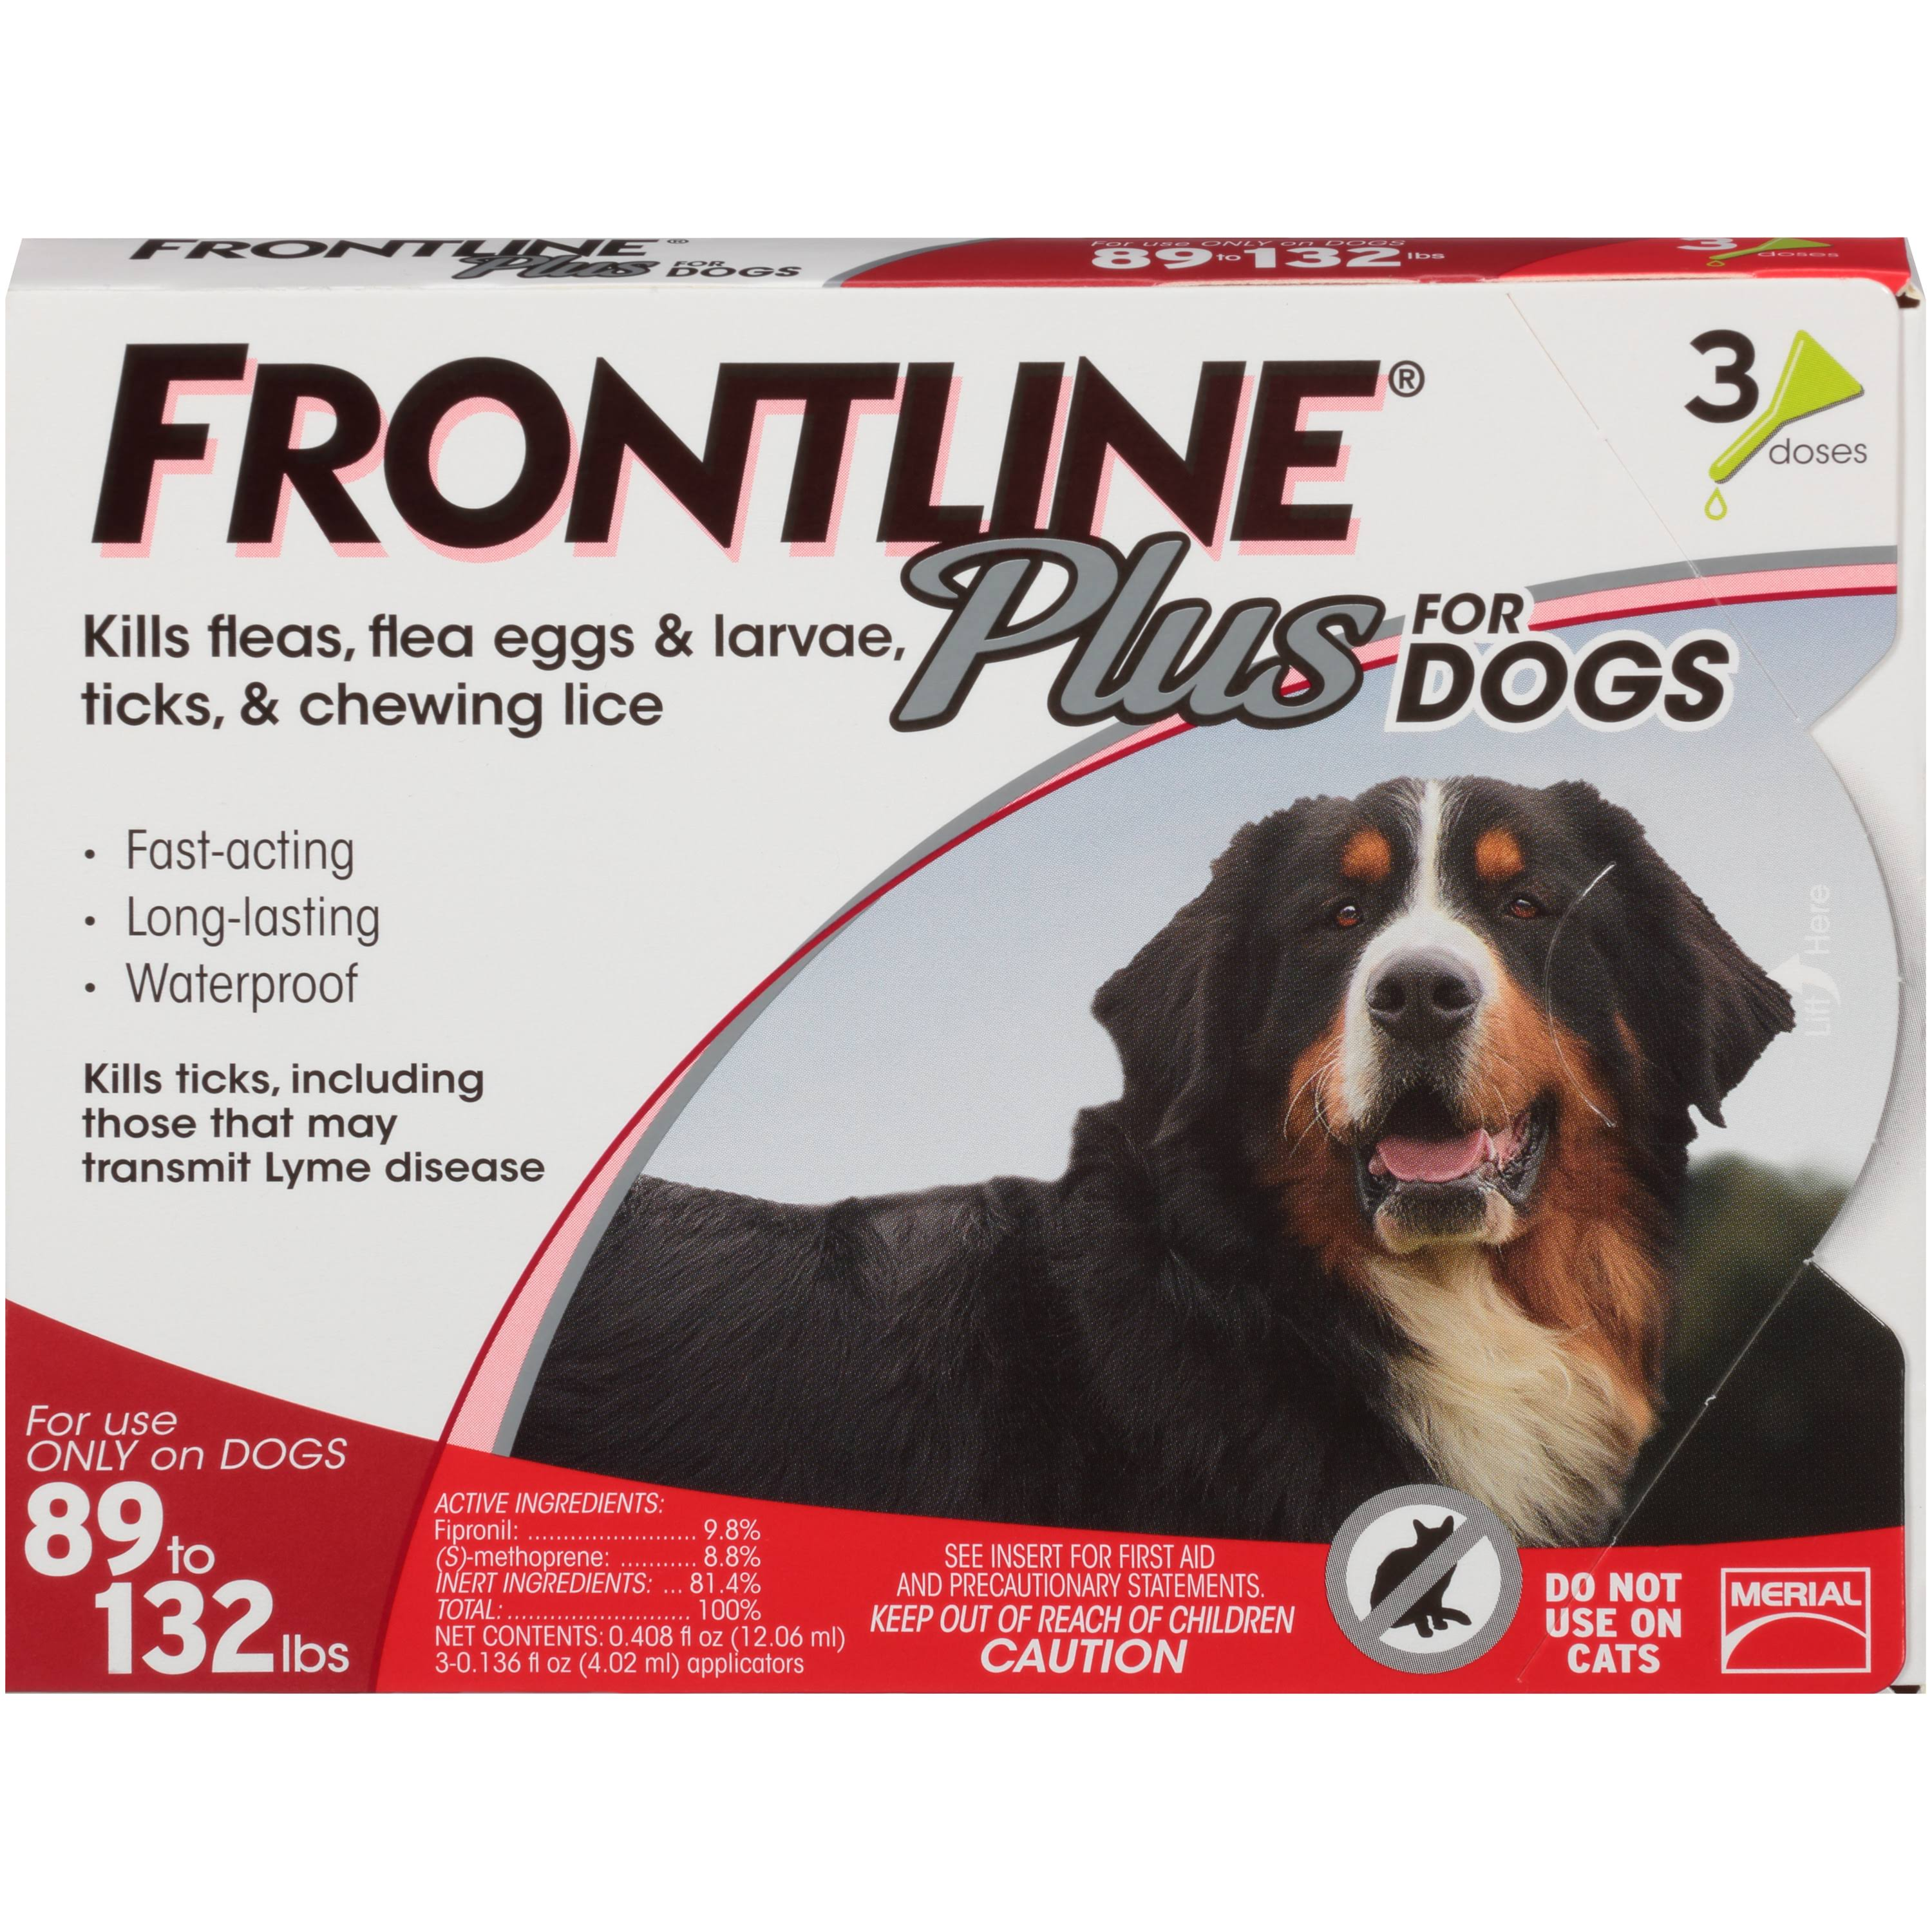 Merial Frontline Plus Flea and Tick Control for Dogs and Puppies - 89-132lb, 3pk